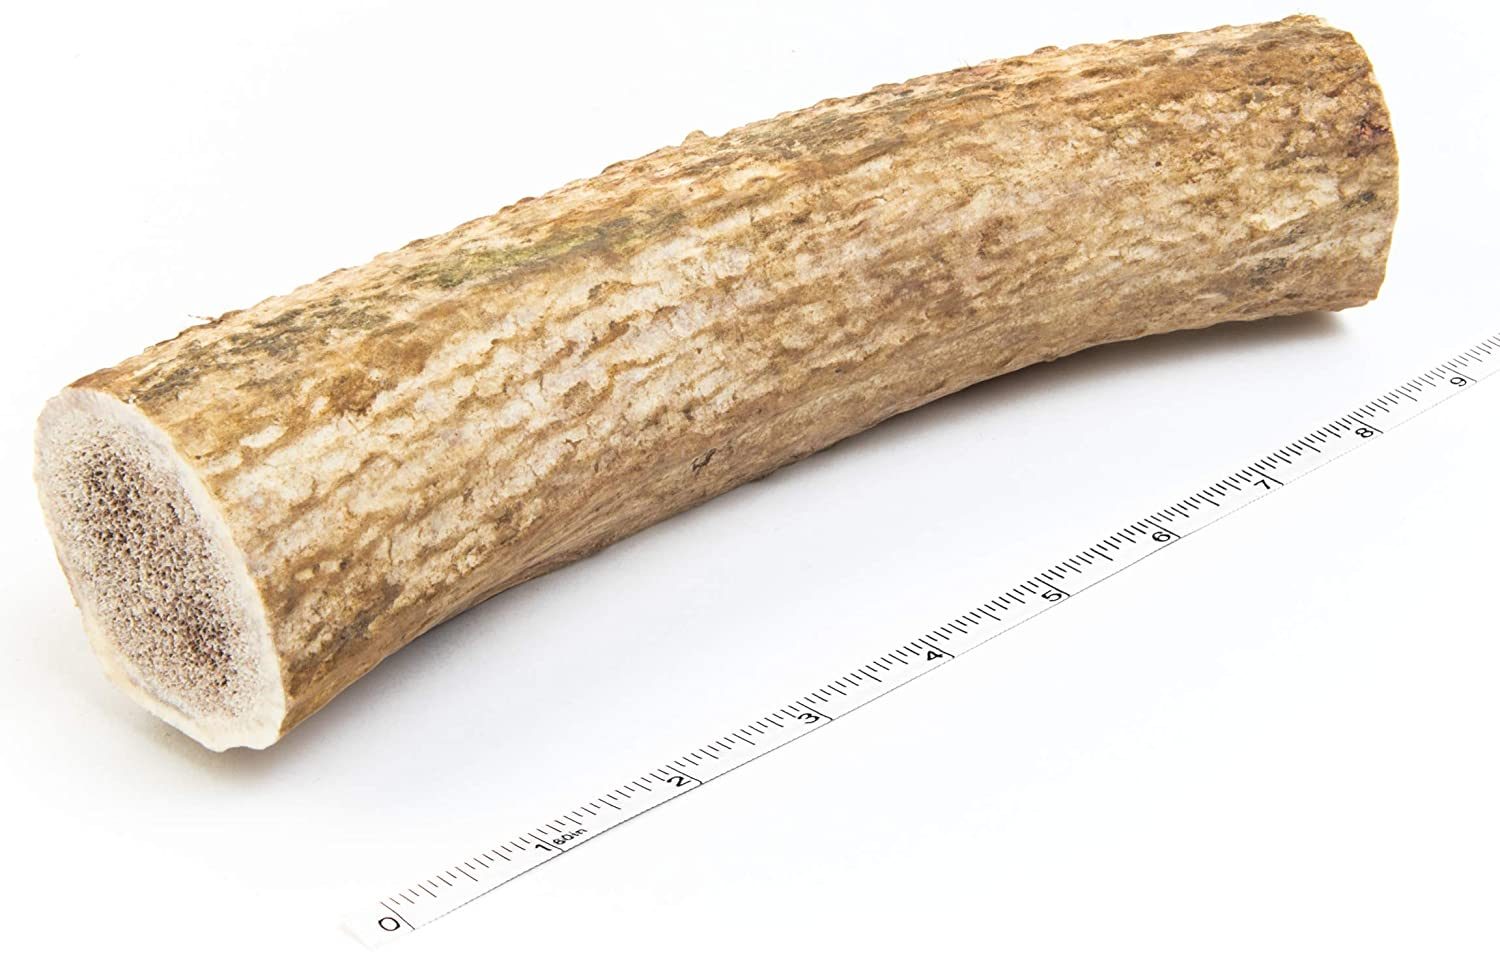 Giant, Monster Sized, Premium Elk Antler Dog Chew – 13 Oz XXXL Super Jumbo Antler For Dogs – Long Lasting Dog Bone – Best Dog Bones for Aggressive Chewers – USA Sourced – Veteran Owned Company